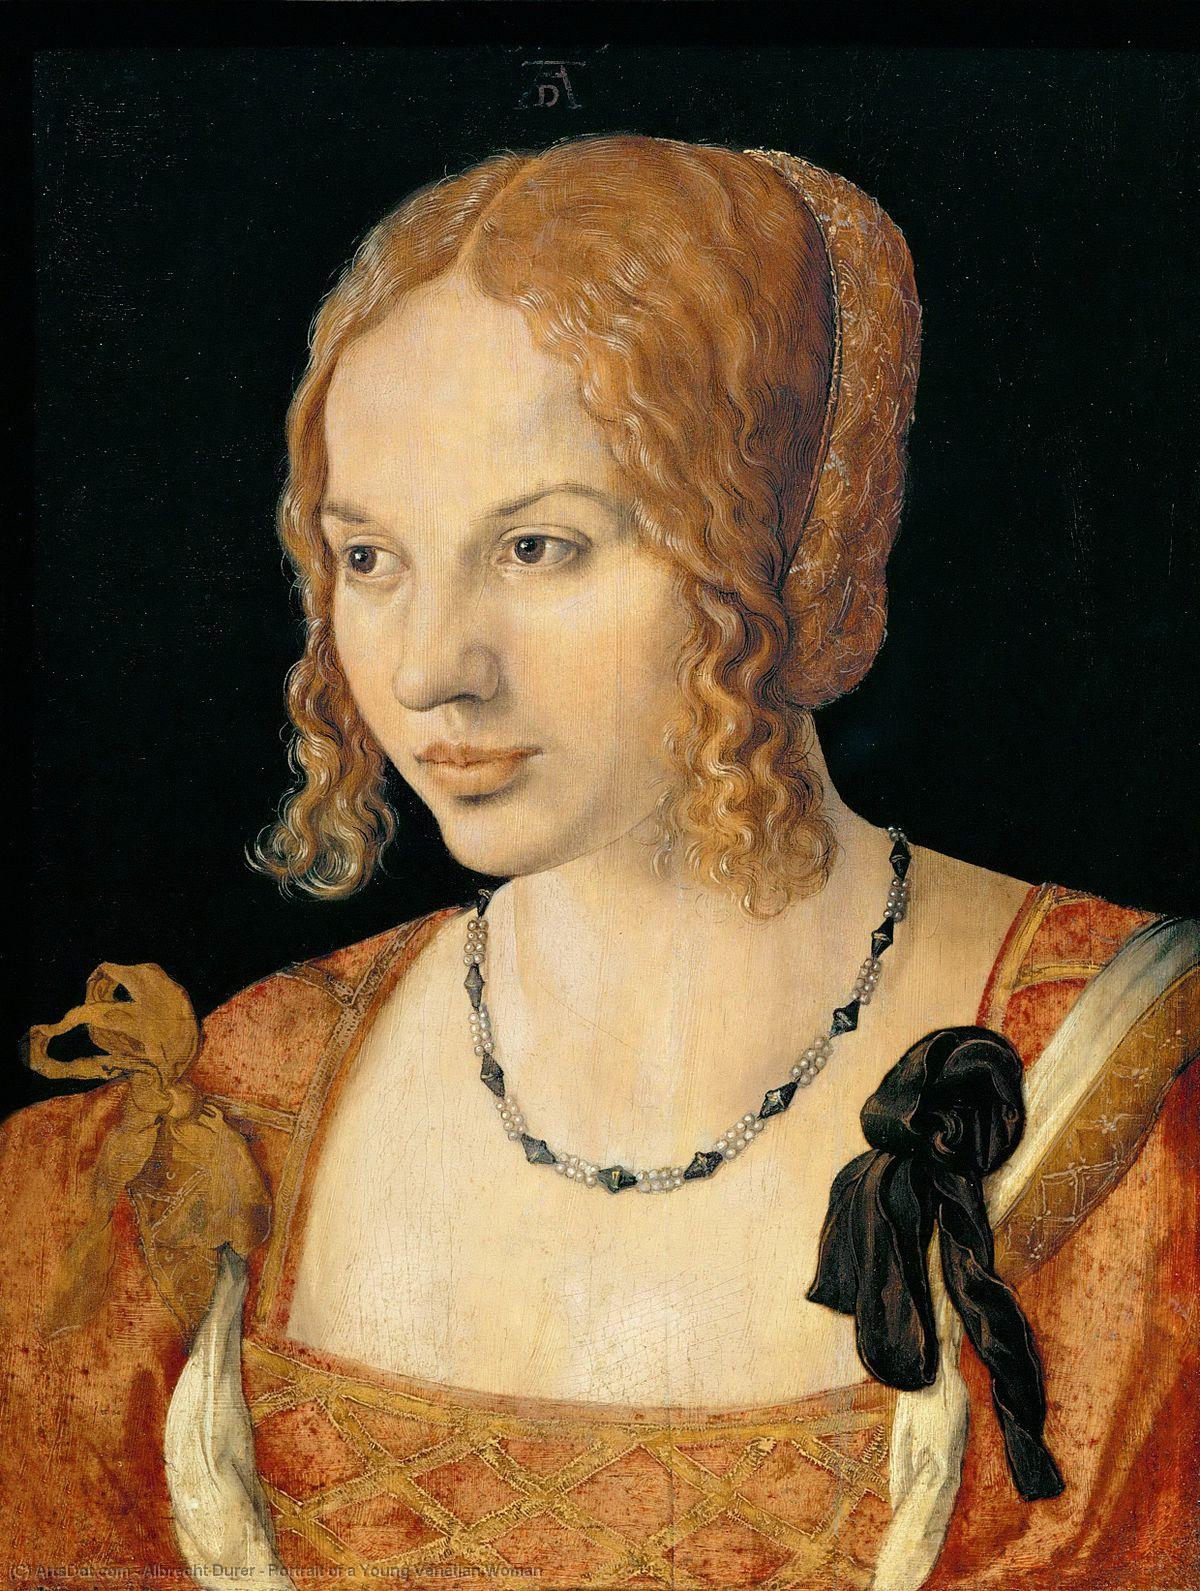 Wikioo.org - The Encyclopedia of Fine Arts - Painting, Artwork by Albrecht Durer - Portrait of a Young Venetian Woman